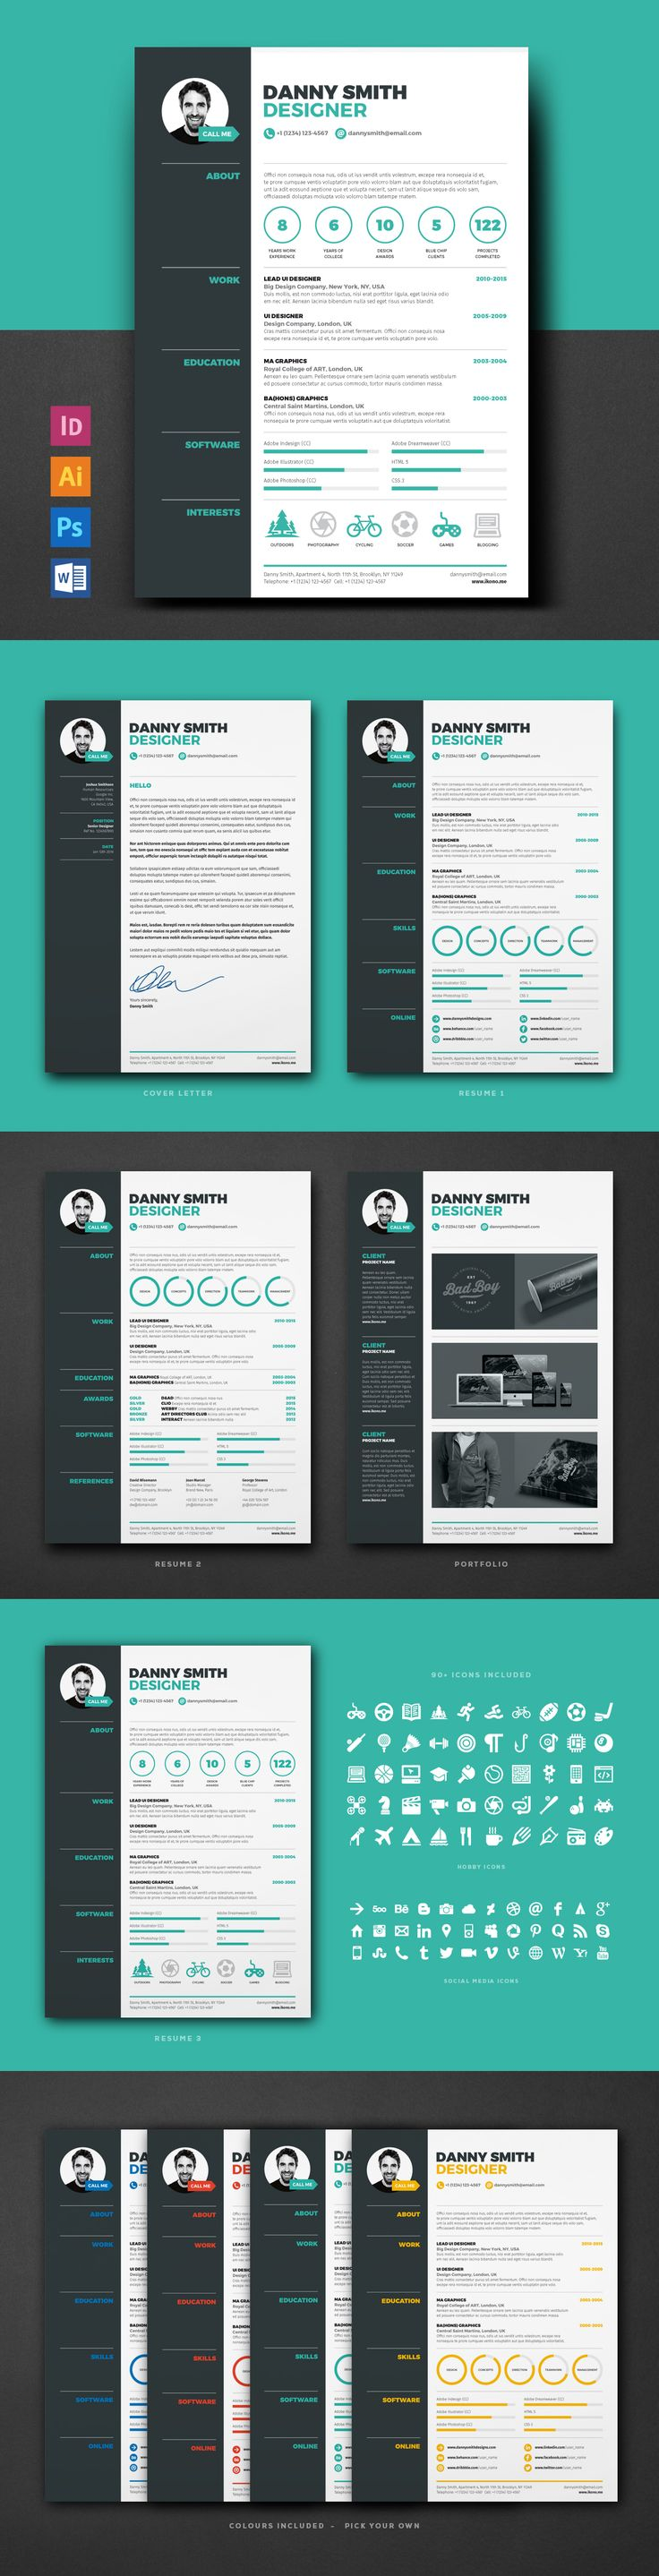 best ideas about best resume template perfect resume 3 features clean functional and professional layout created to help recruiters focus on your